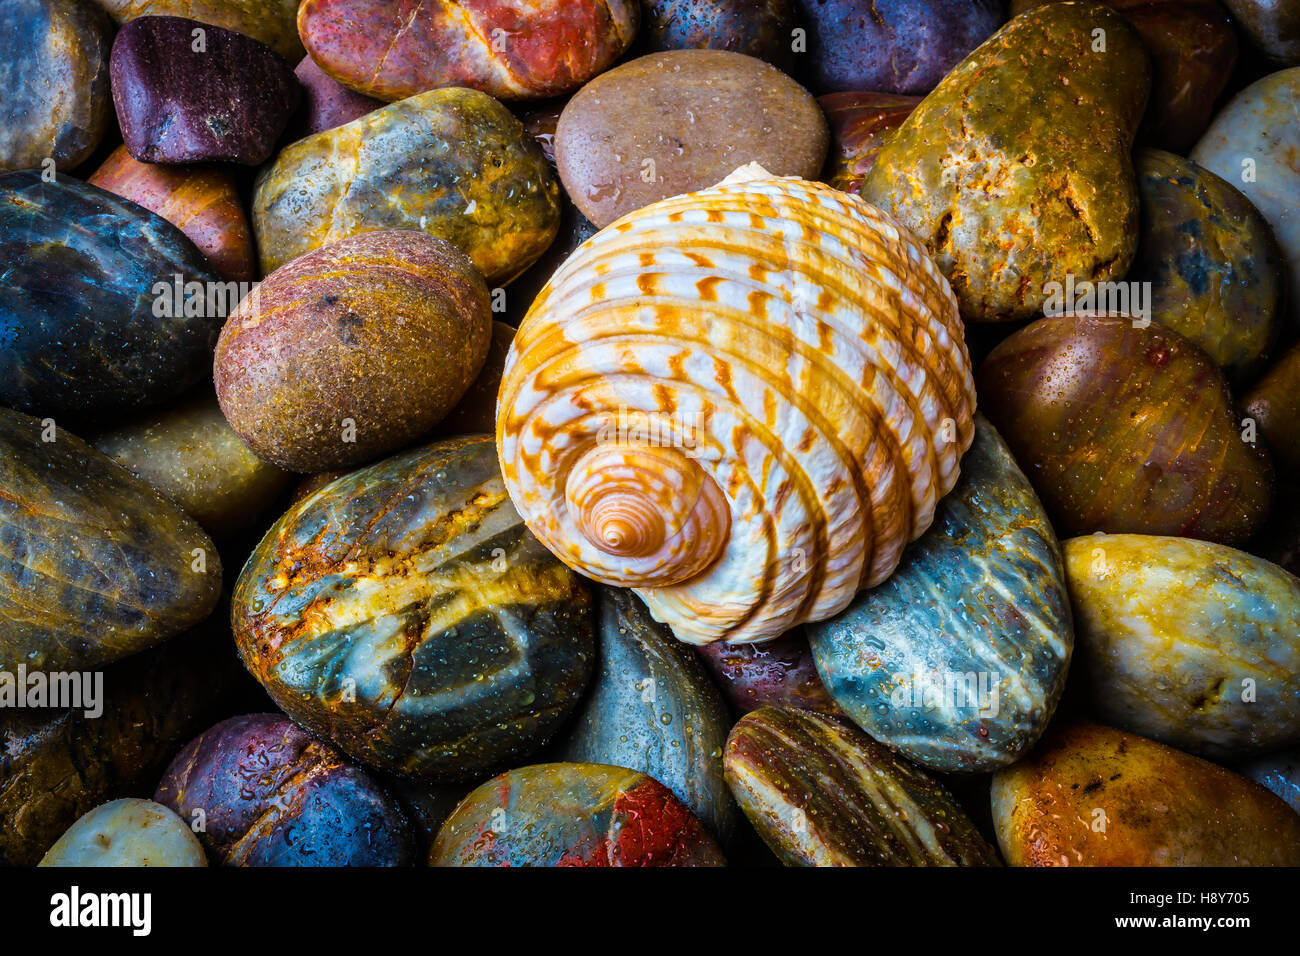 Seashell On River Rocks Stock Photo